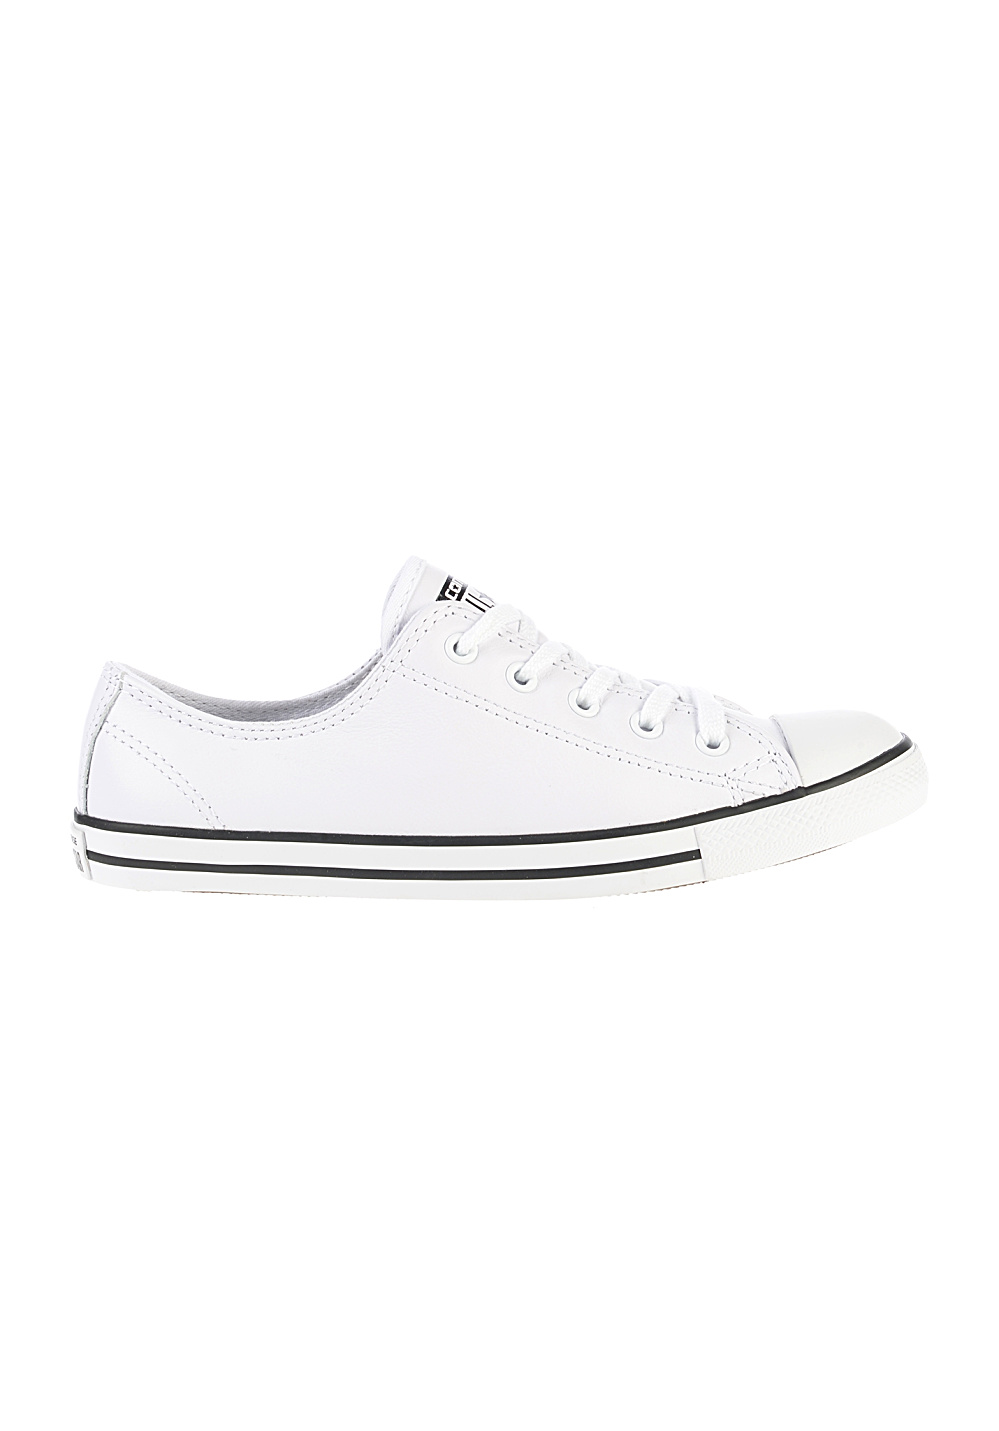 Converse Chuck Taylor All Star Dainty Ox Sneakers for Women White